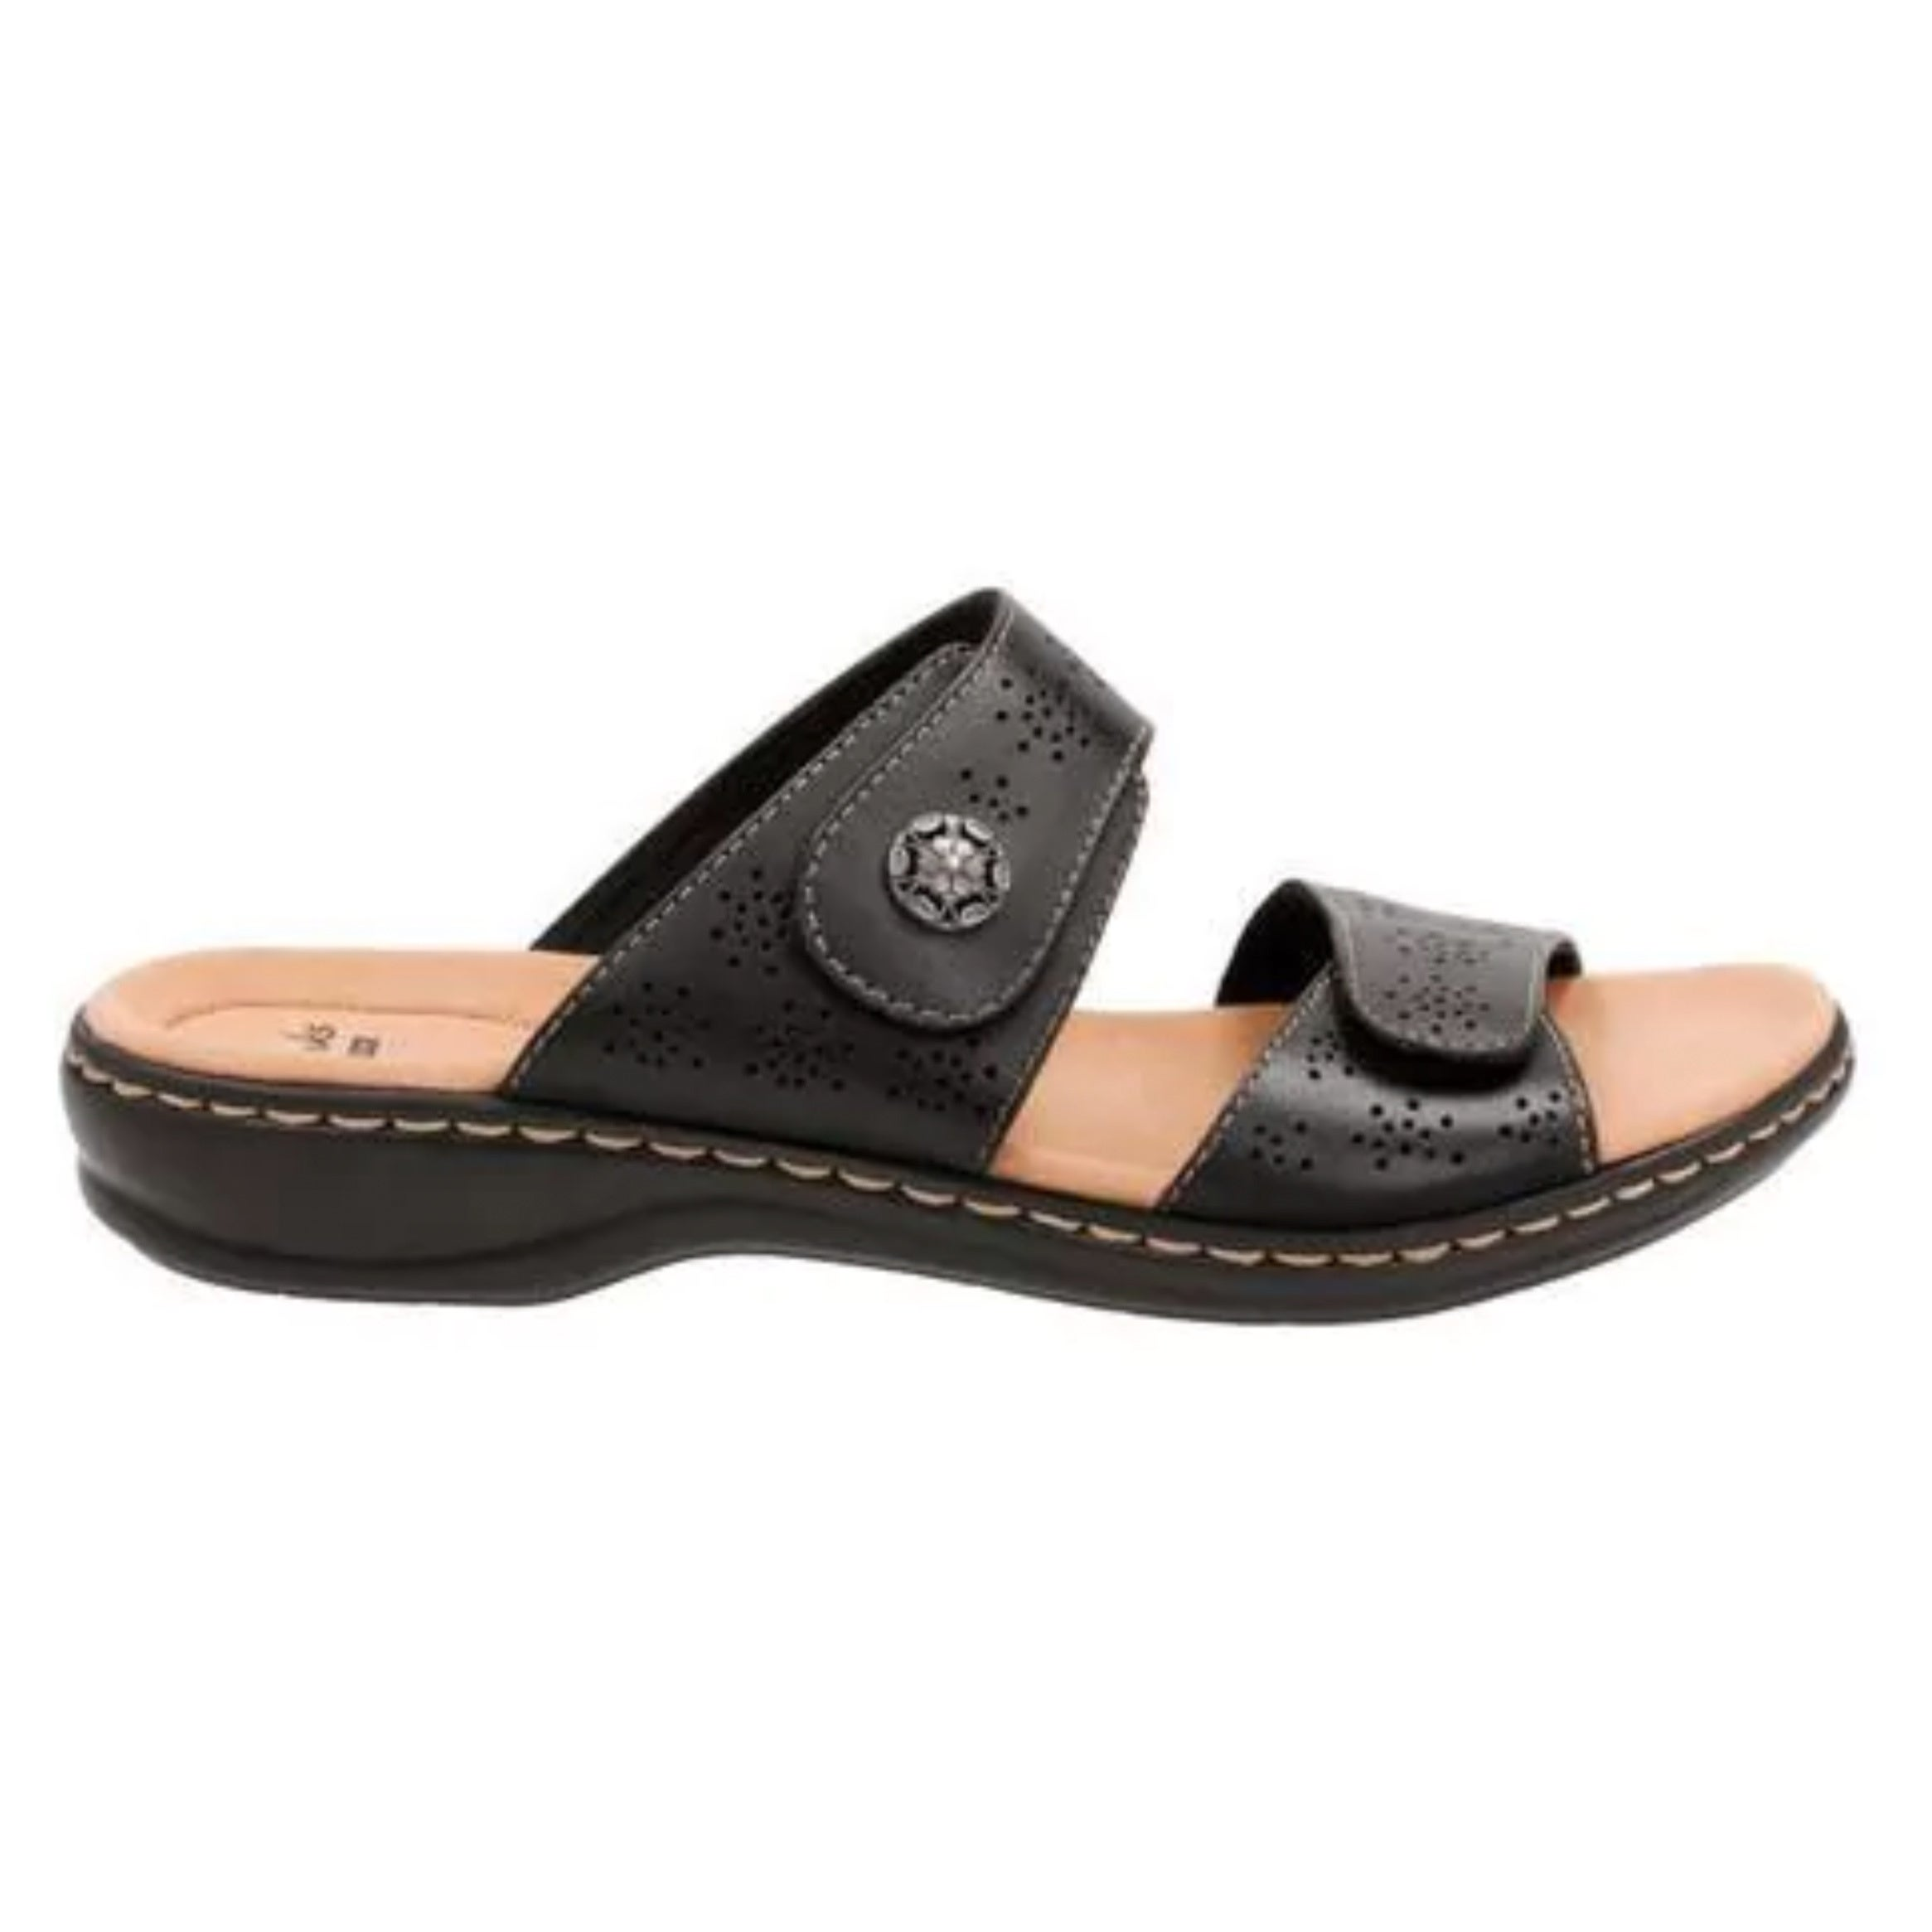 bc1da82f8888 Shop Women s Clarks Leisa Lacole Slide Black Leather - Free Shipping Today  - Overstock - 14165544